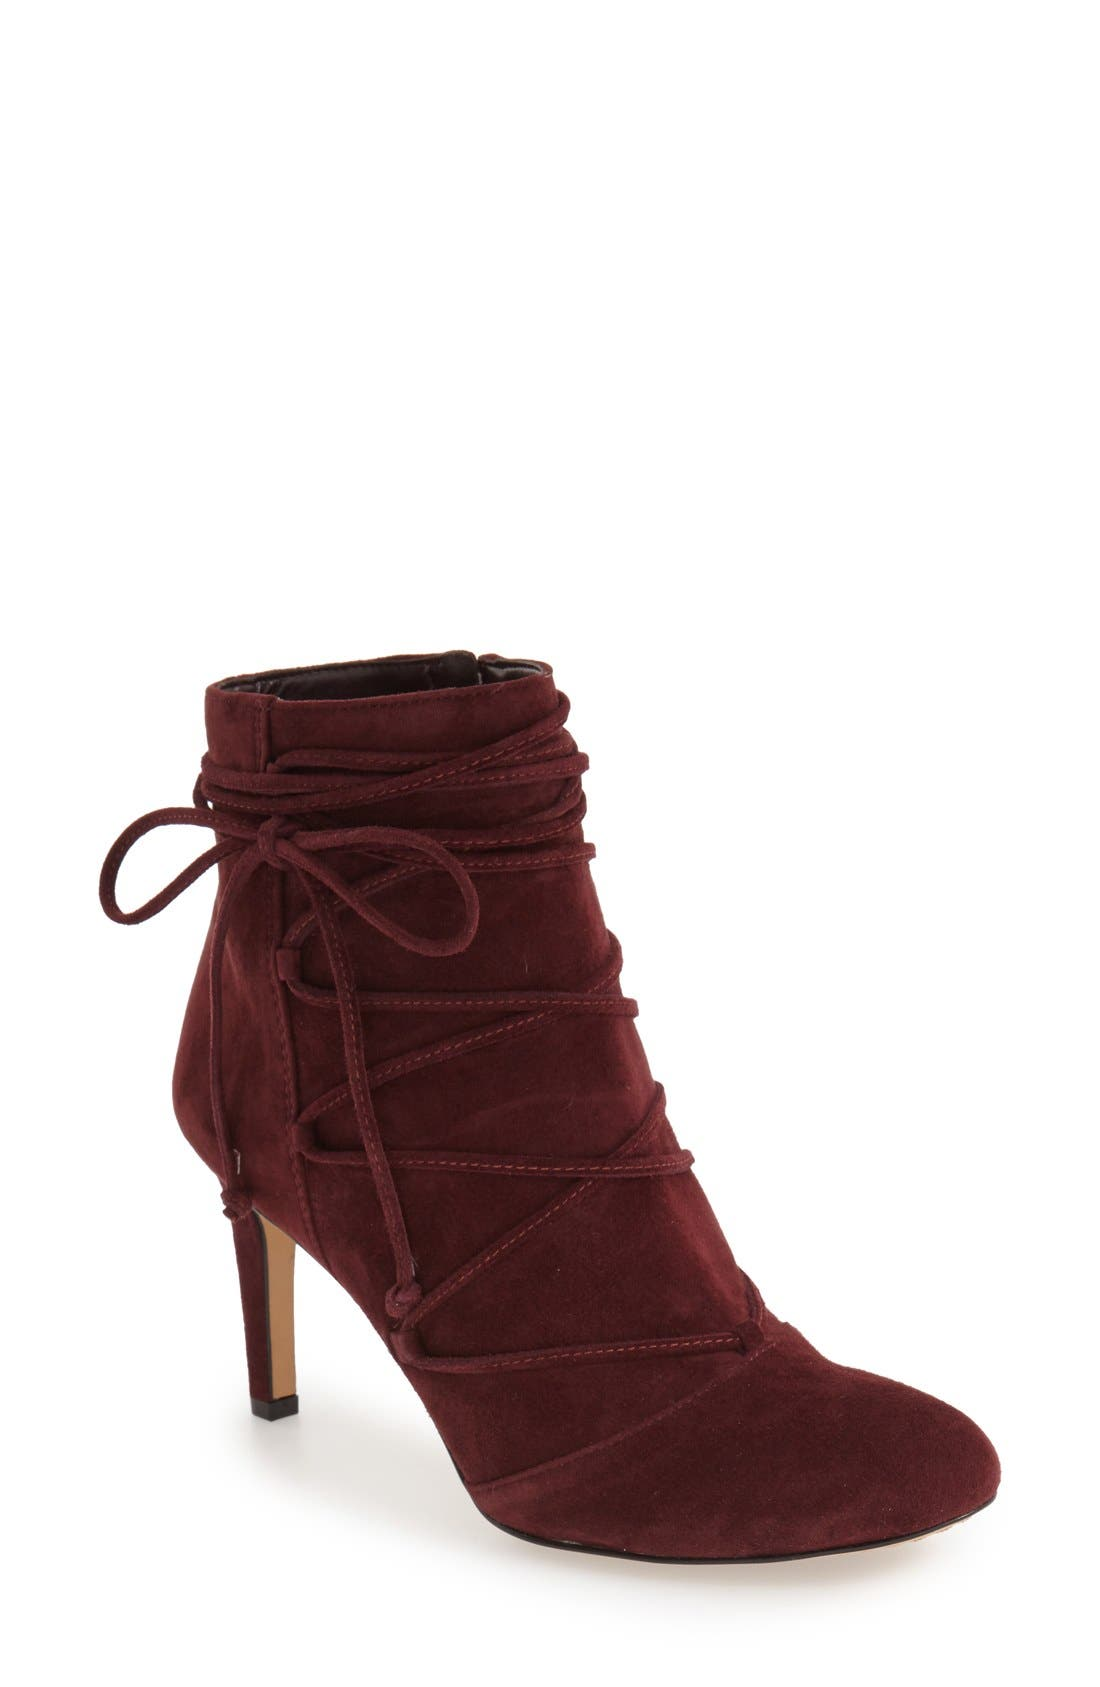 Alternate Image 1 Selected - Vince Camuto 'Chenai' Wraparound Lace Bootie (Women)